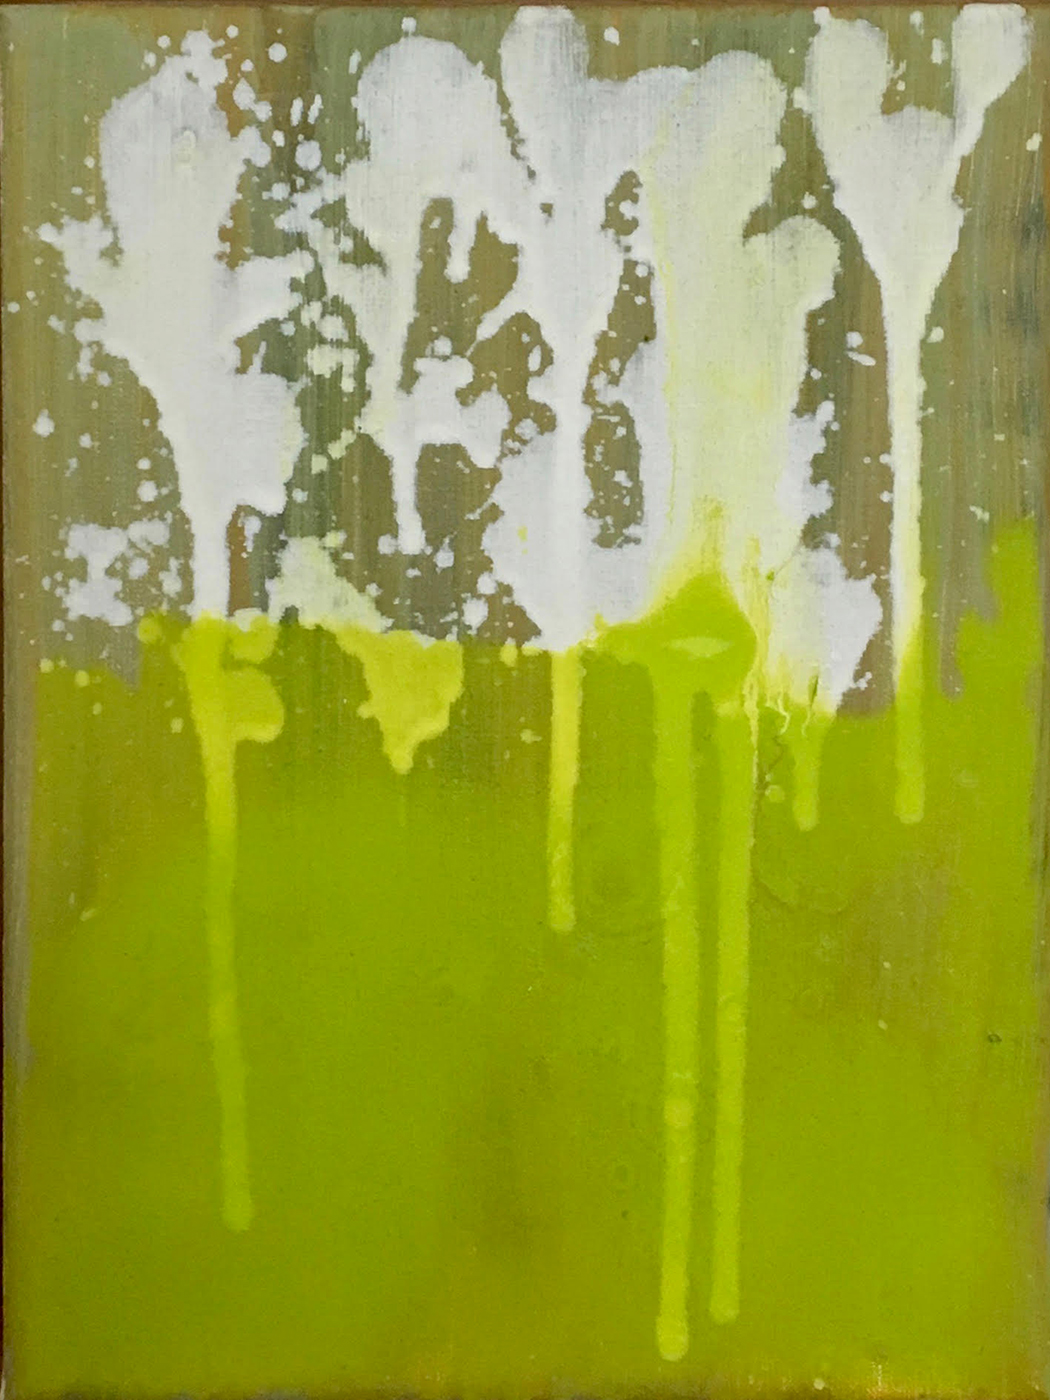 Rody Luton, Verdant 2, close-up (24 x 18 cm), 2018.